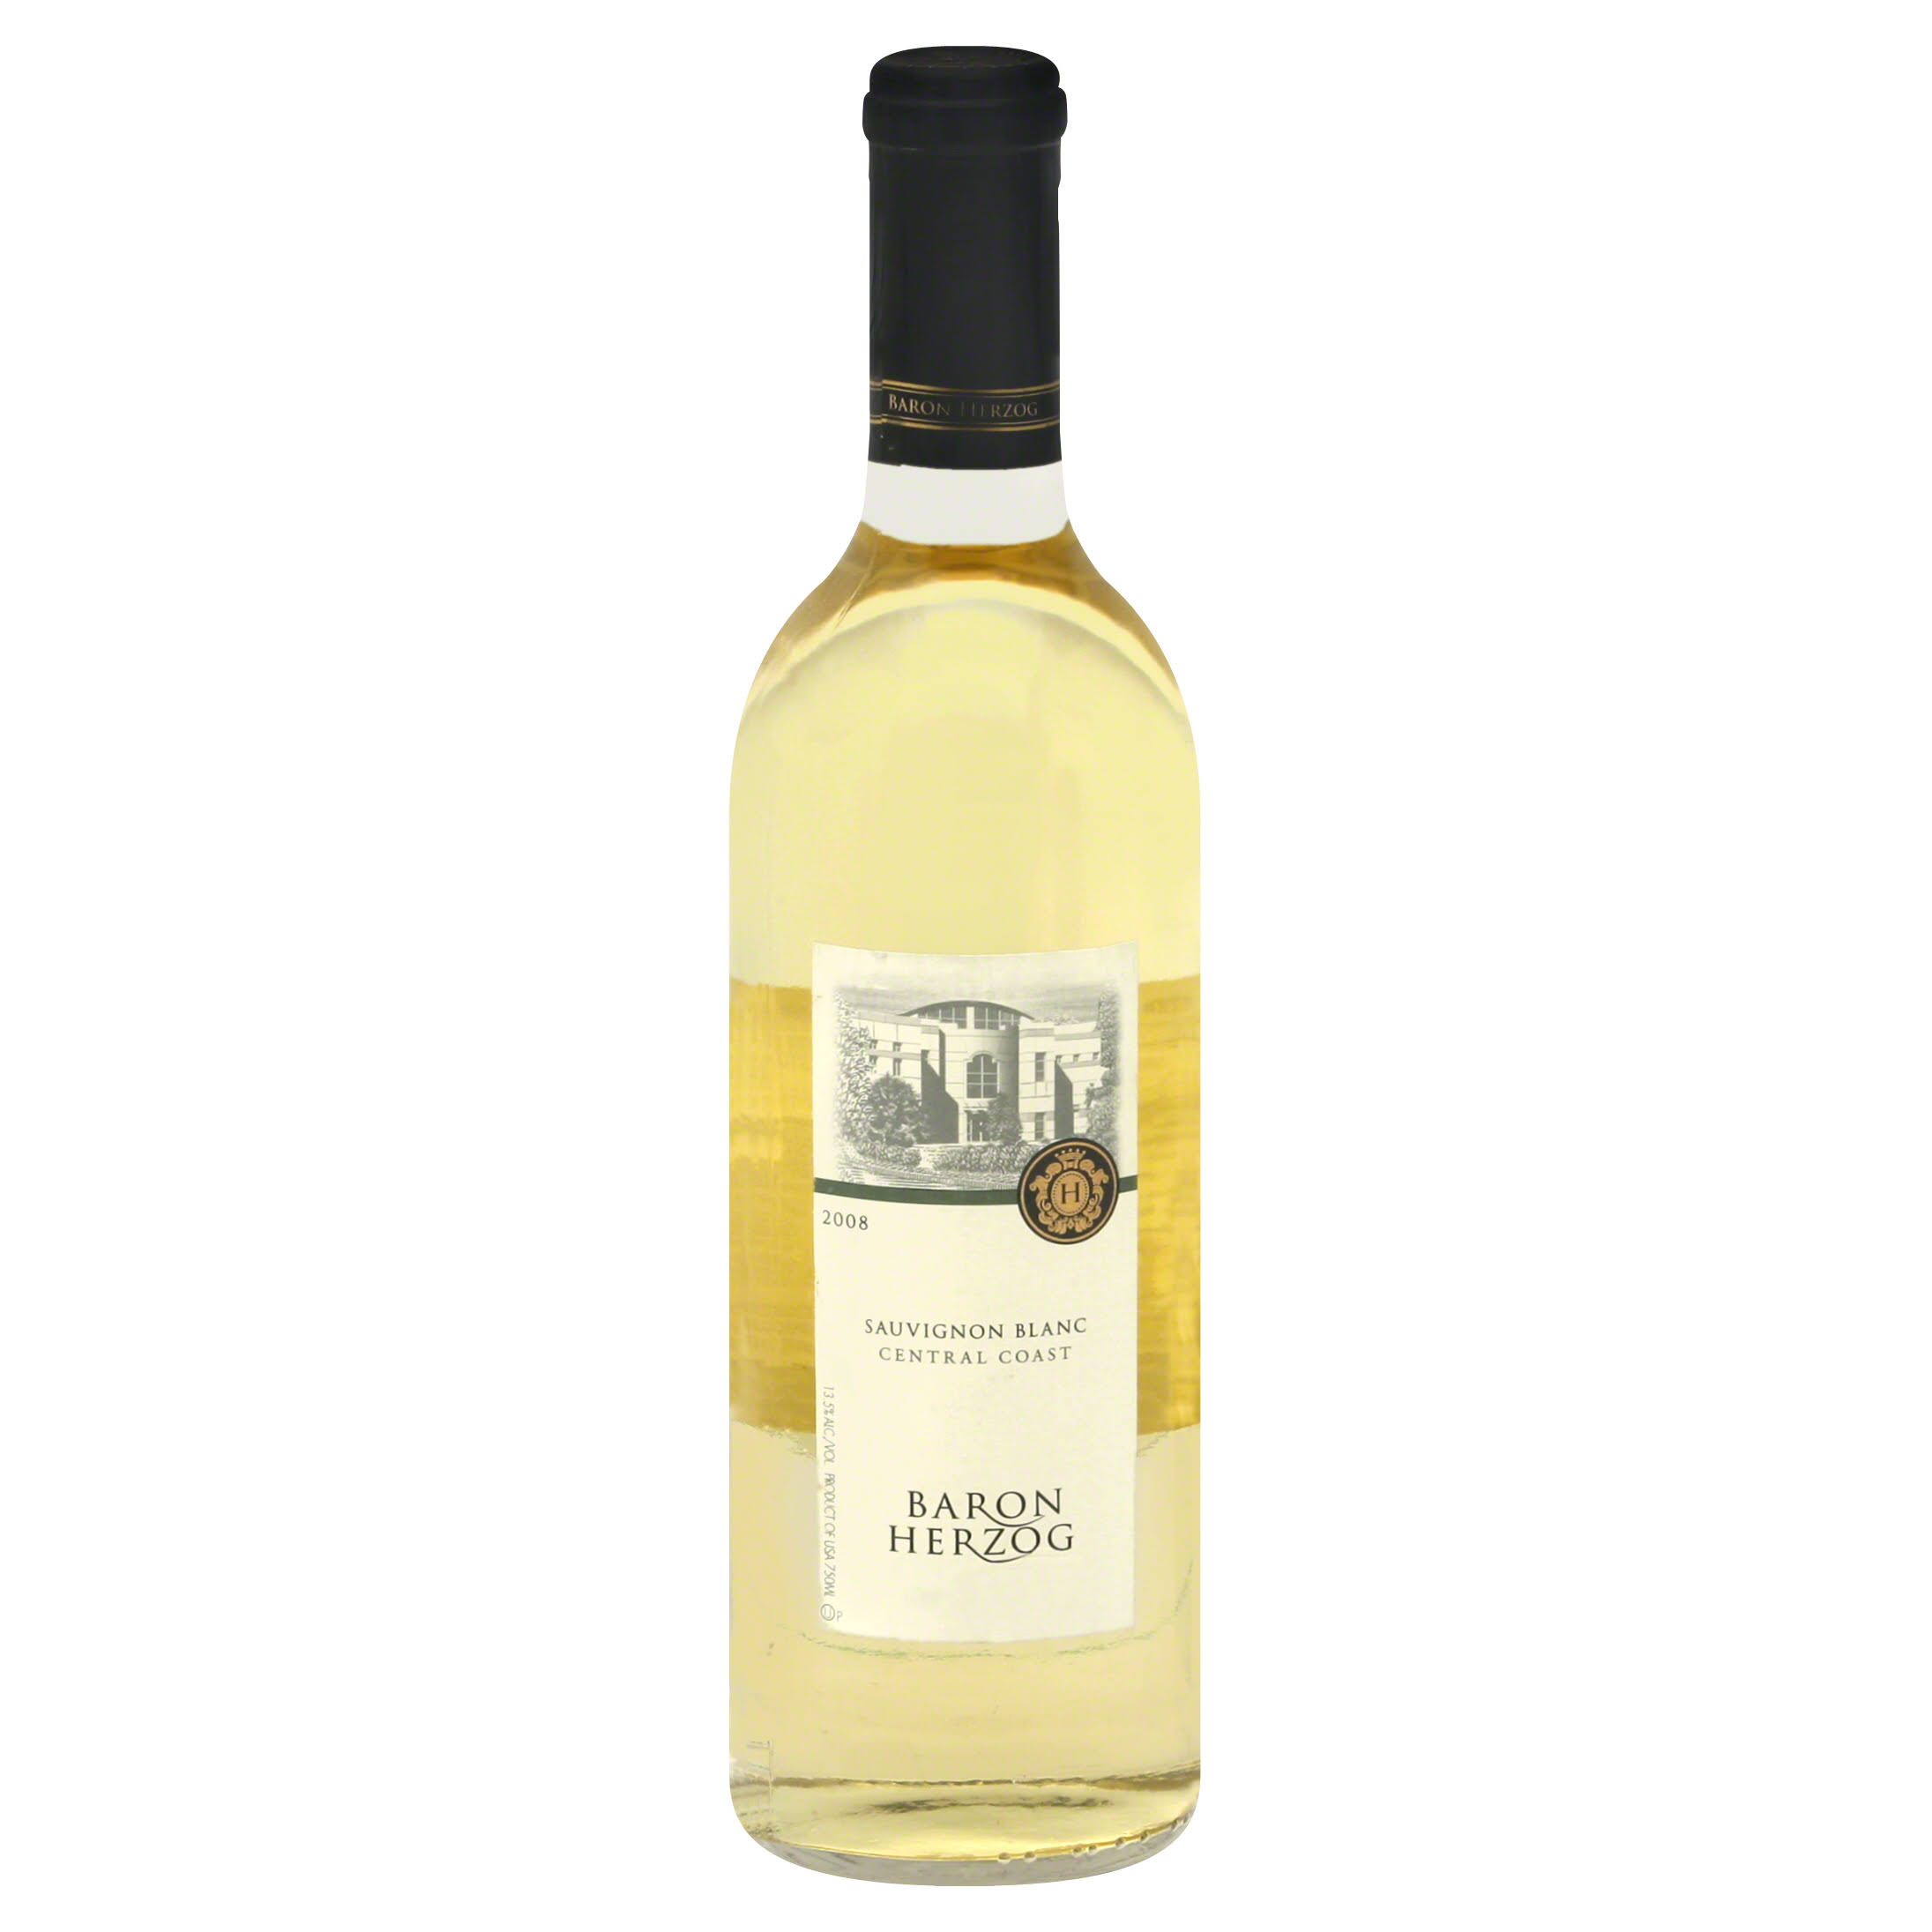 Baron Herzog Sauvignon Blanc, Central Coast, 2008 - 750 ml